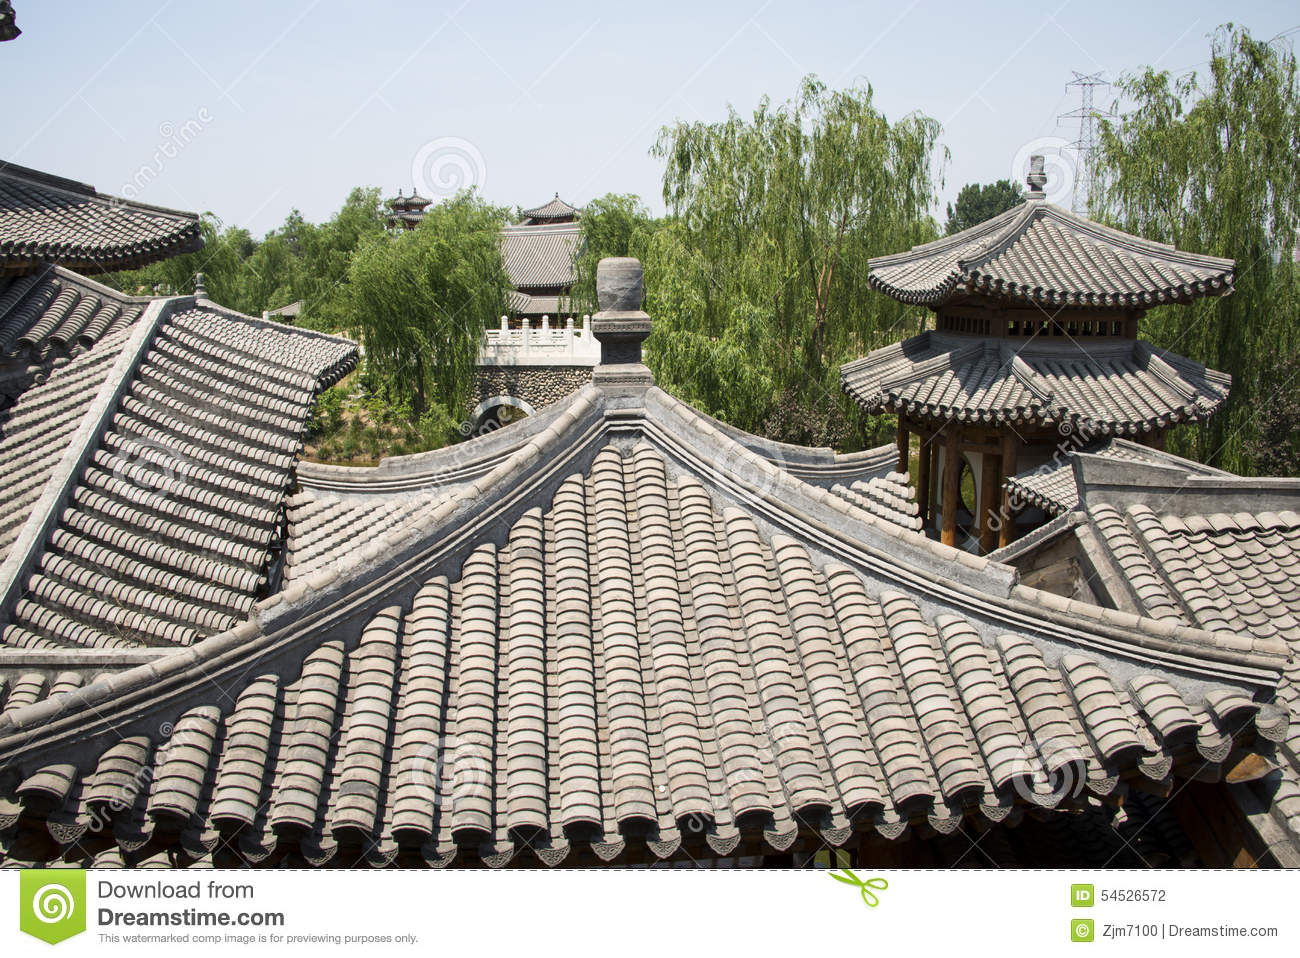 a study on chinese roof structures Study flashcards on med term exam study chap 12 at cram  forms the roof of the  which of the following structures has no digestive function but may.